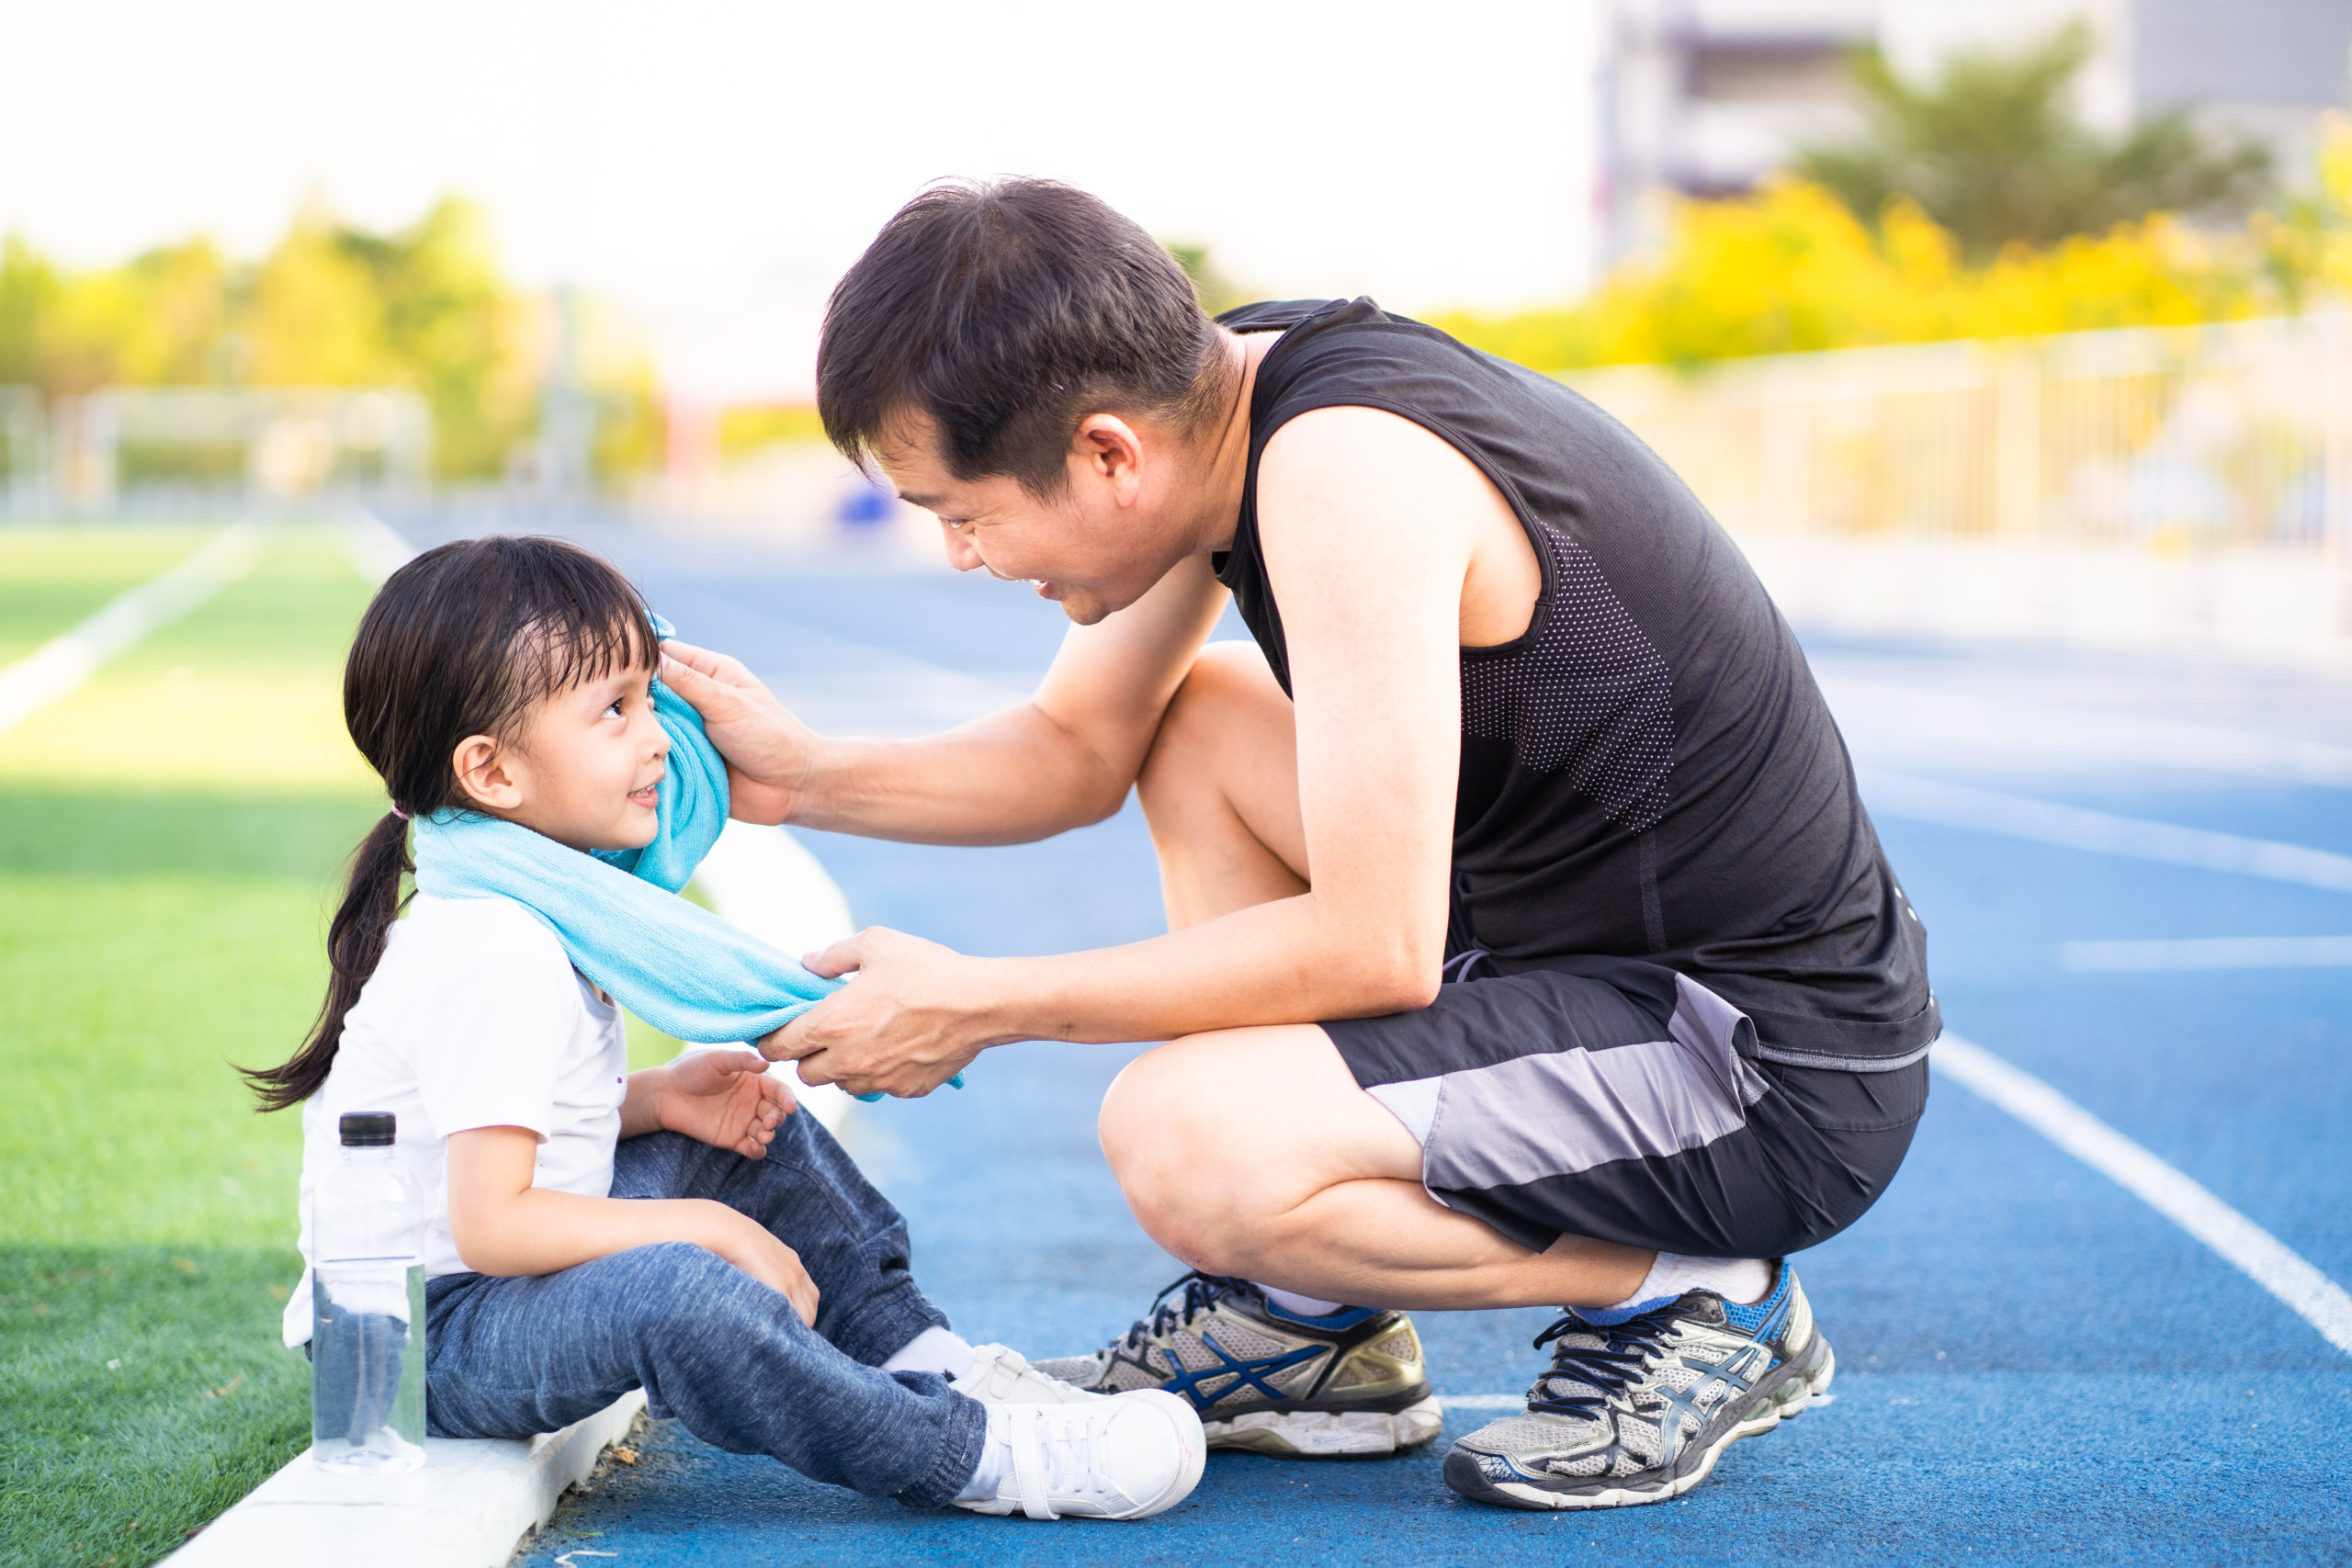 A Parent's Guide to Getting Kids Involved in Sports